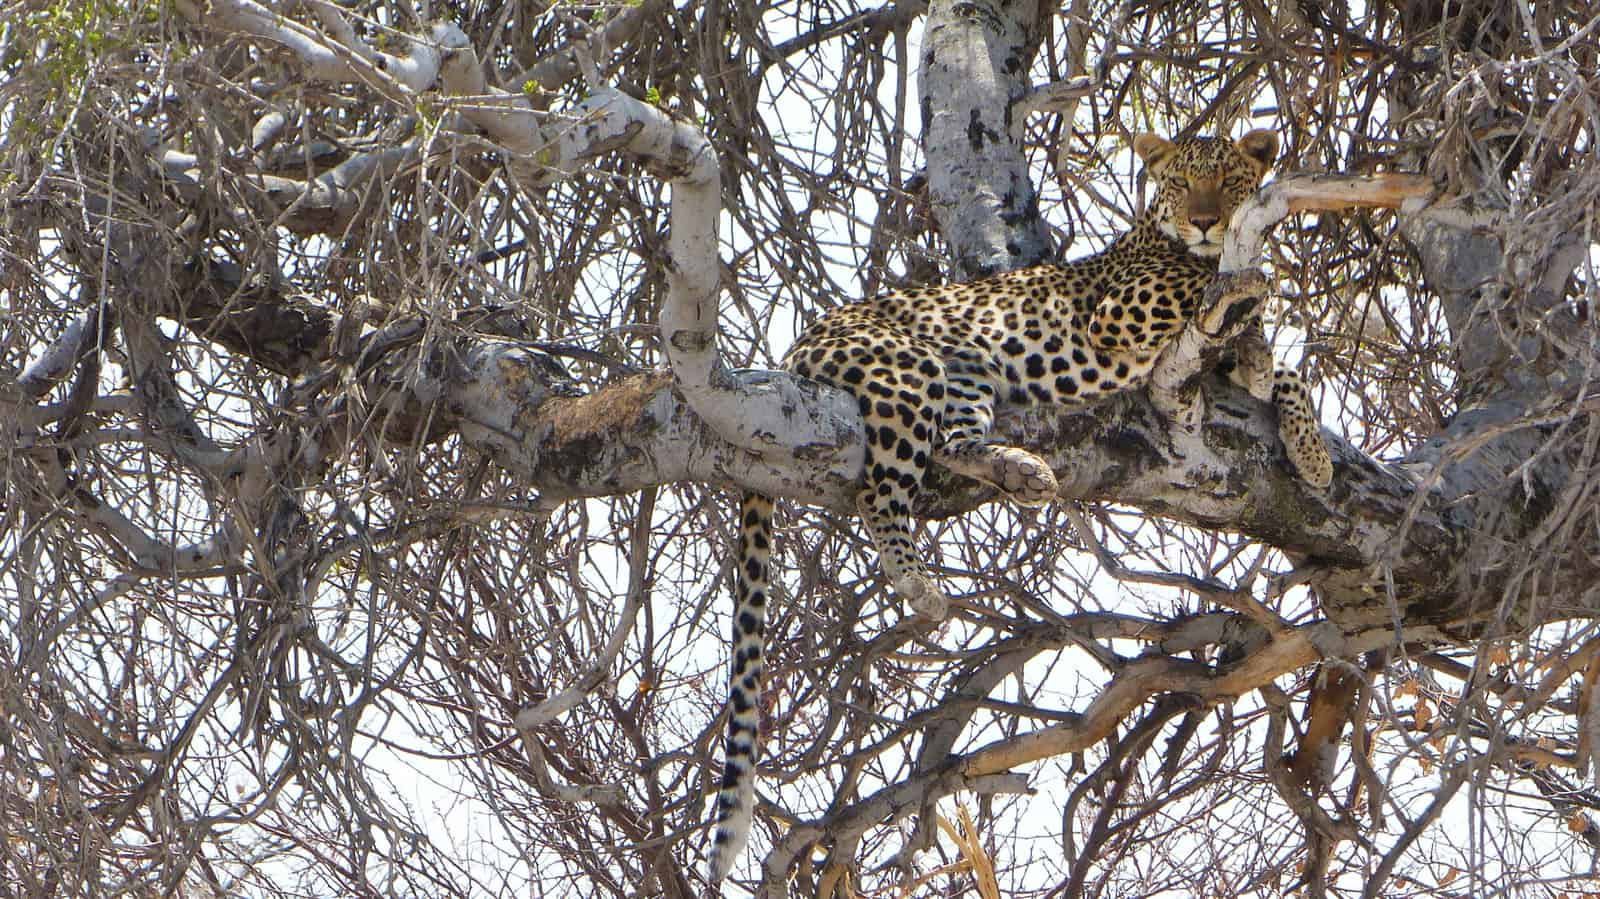 Leopard at Etosha National Park, Namibia